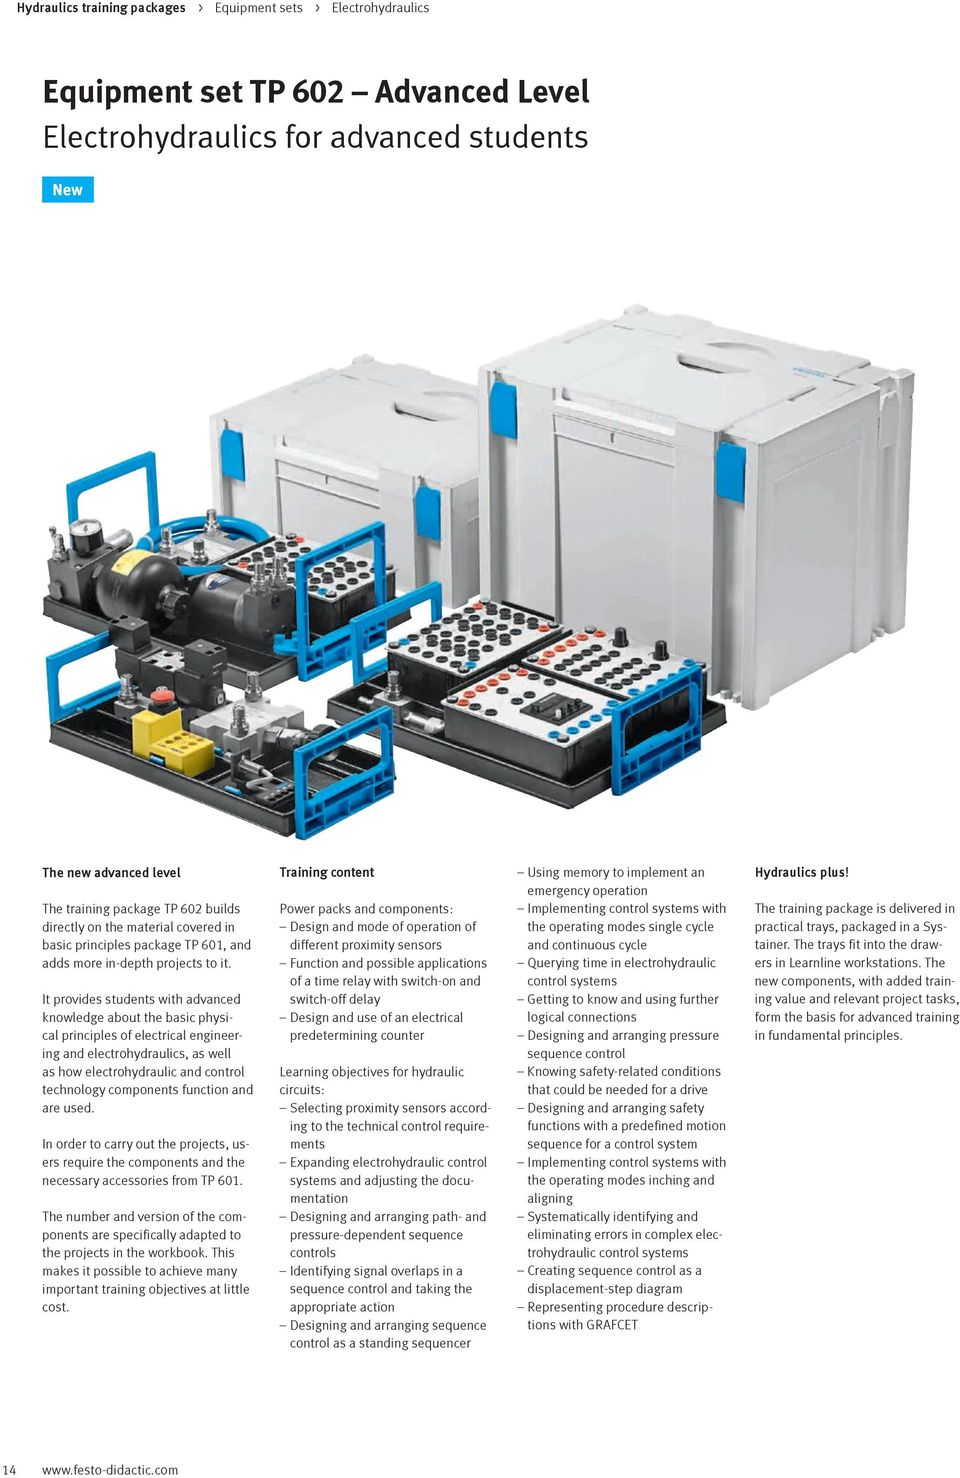 Hydraulics Vocational And Further Training With Festo Didactic Pdf Simple Hydraulic System Diagram Industrial It Provides Students Advanced Knowledge About The Basic Physical Principles Of Electrical Engineering Electrohydraulics